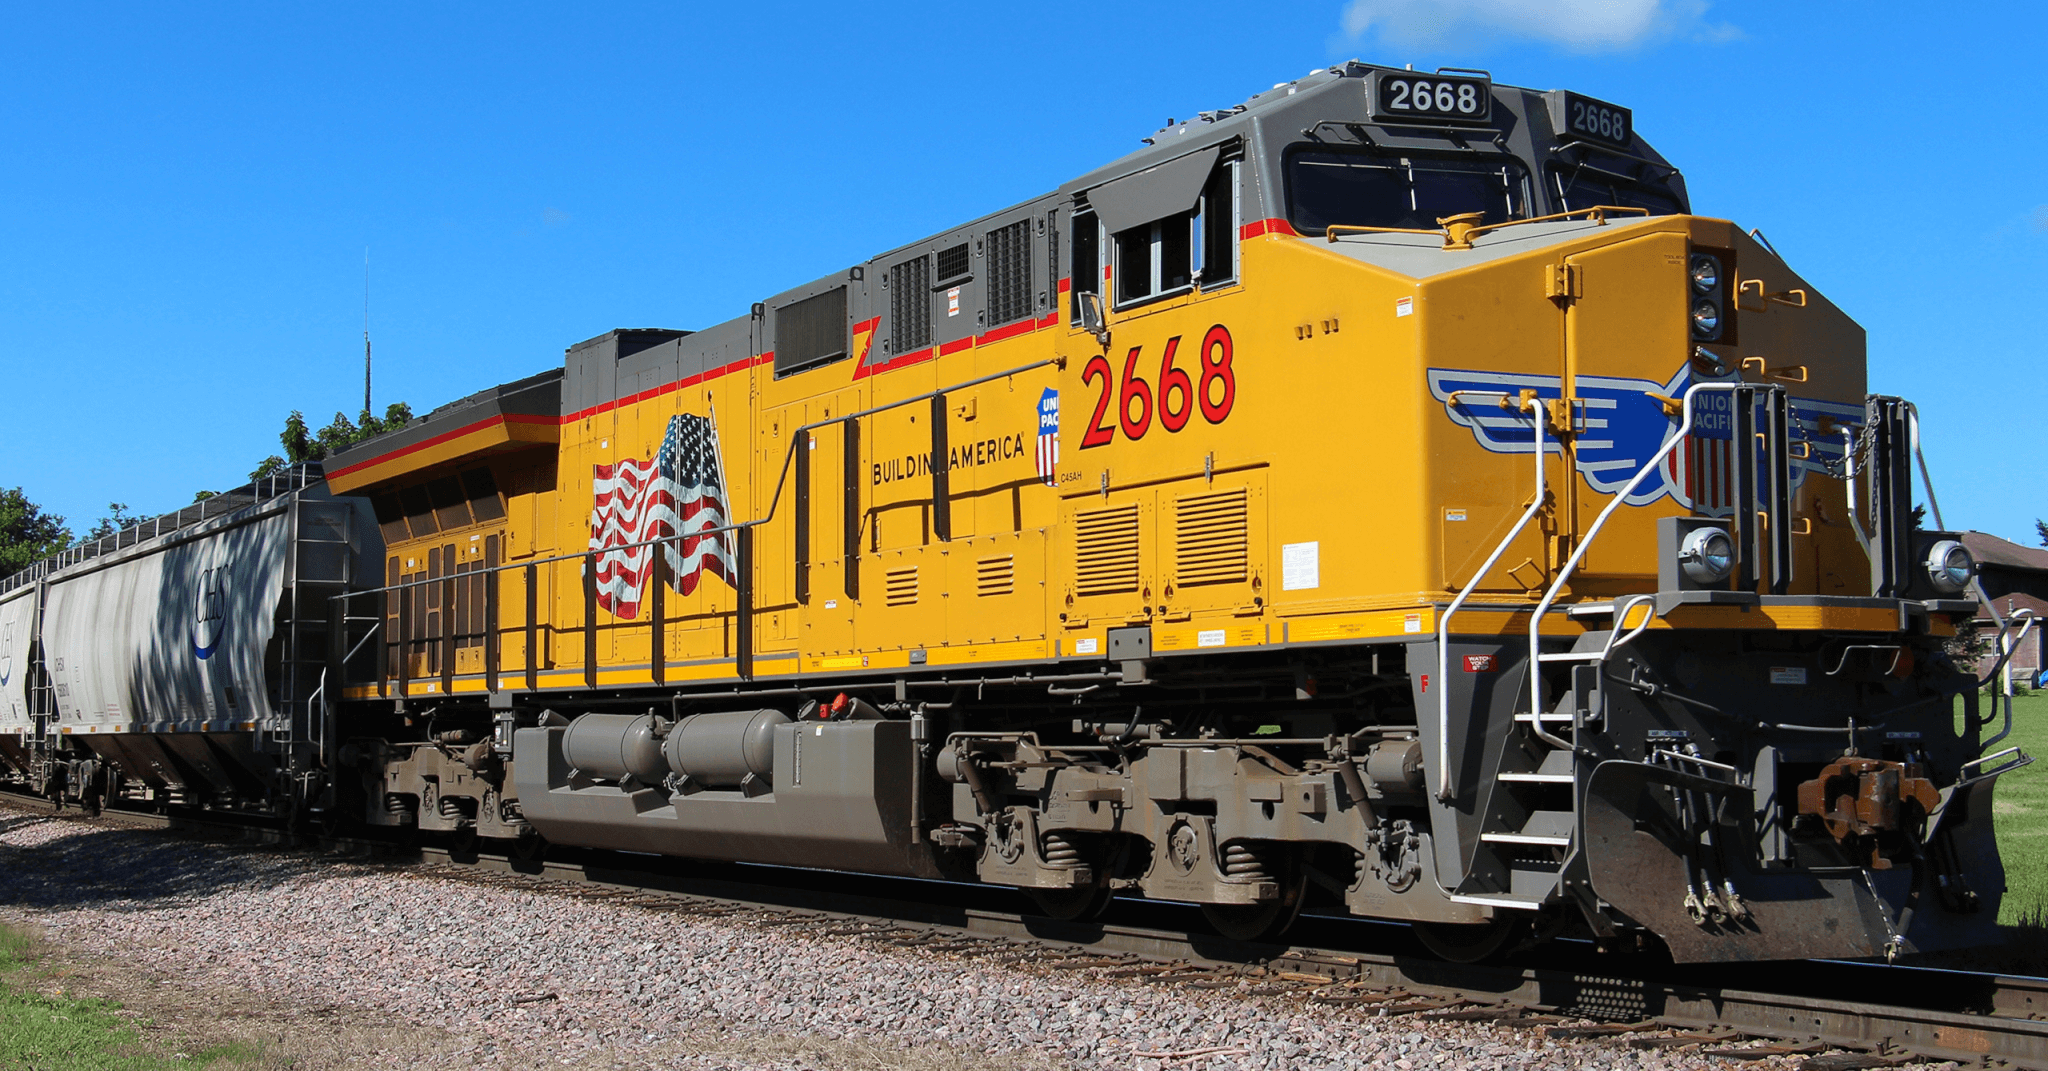 Railway News Union Pacific Is Safest US Railroad For